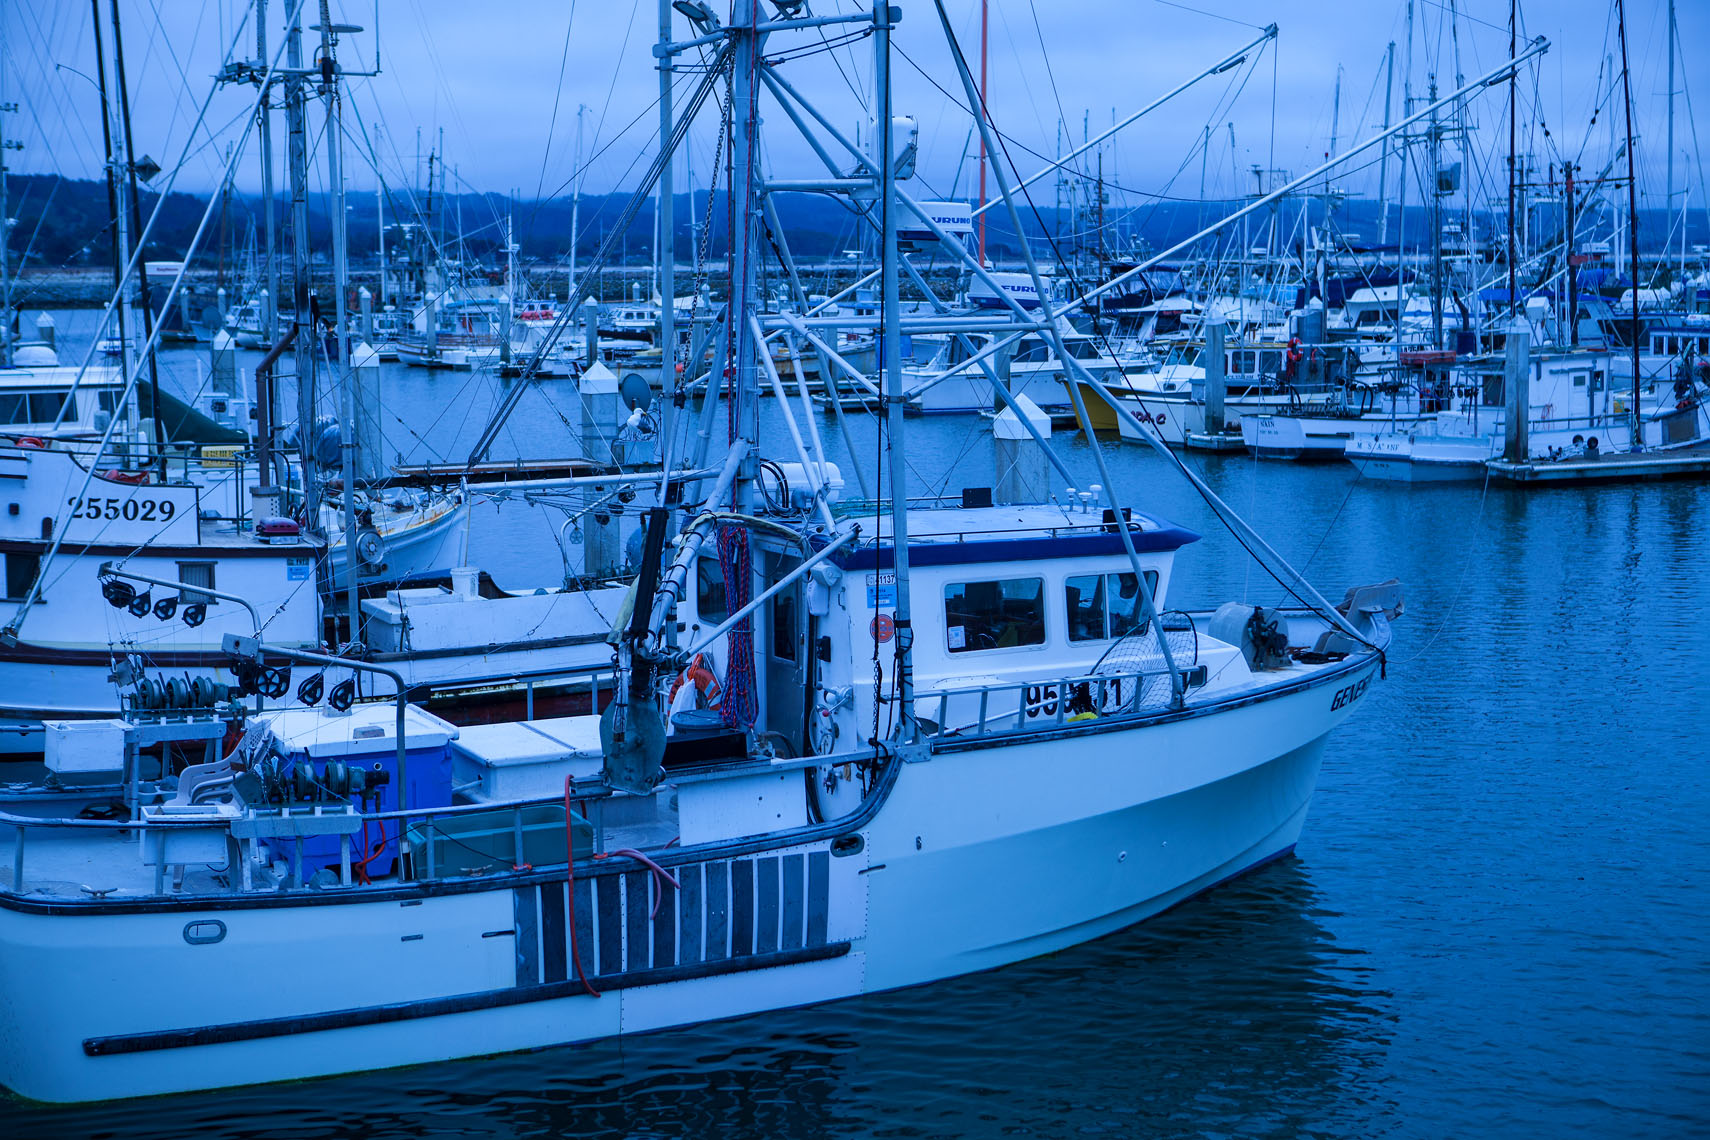 commercial salmon fishing boats, El Granada near Half Moon Bay